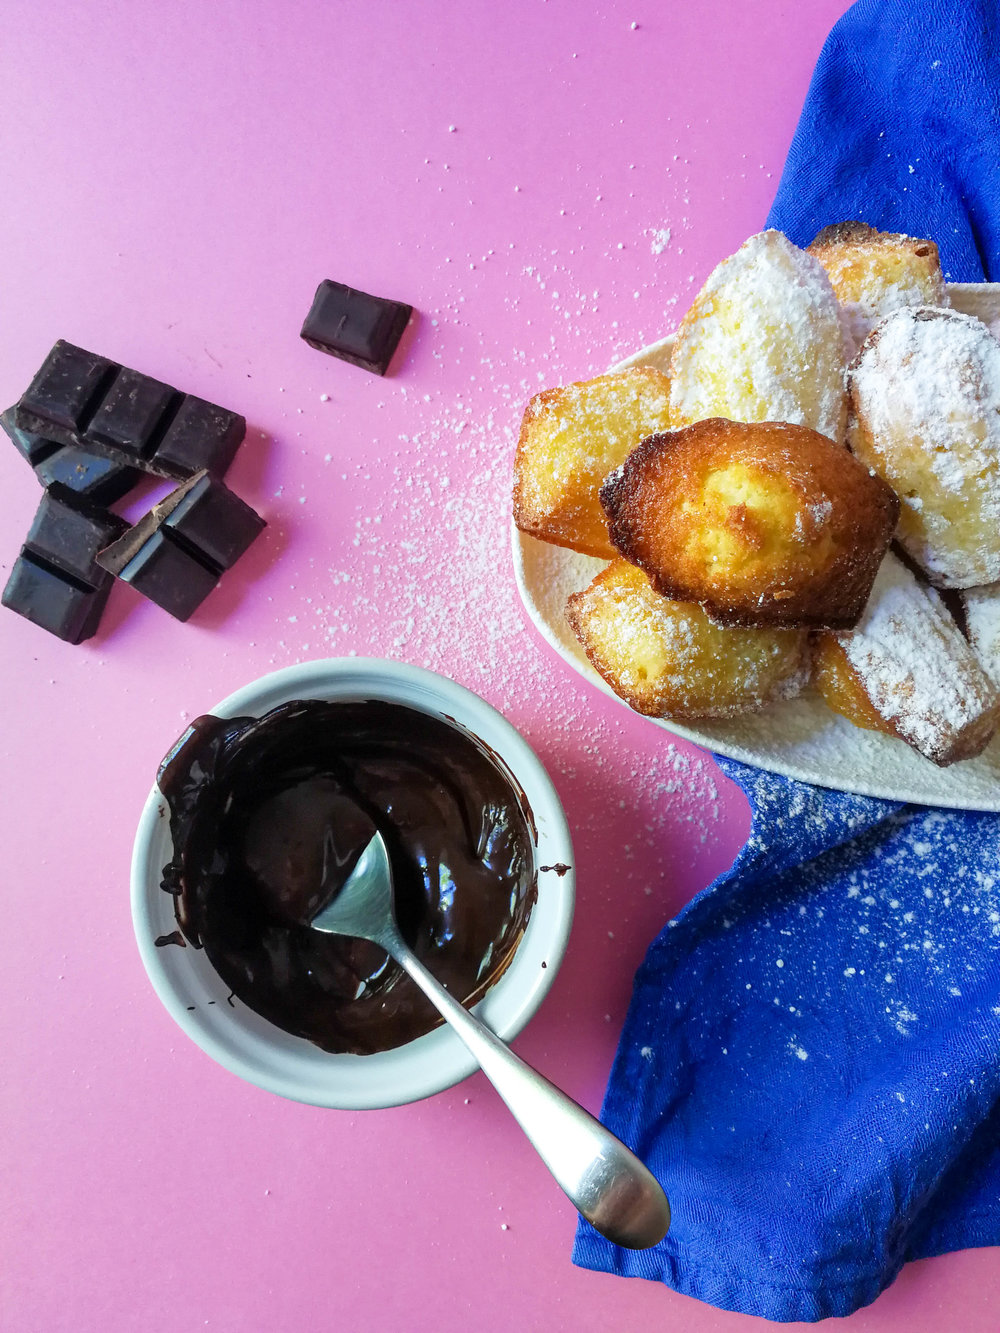 An alternative: dip the madeleines in melted chocolate. Let them resolidify before serving.